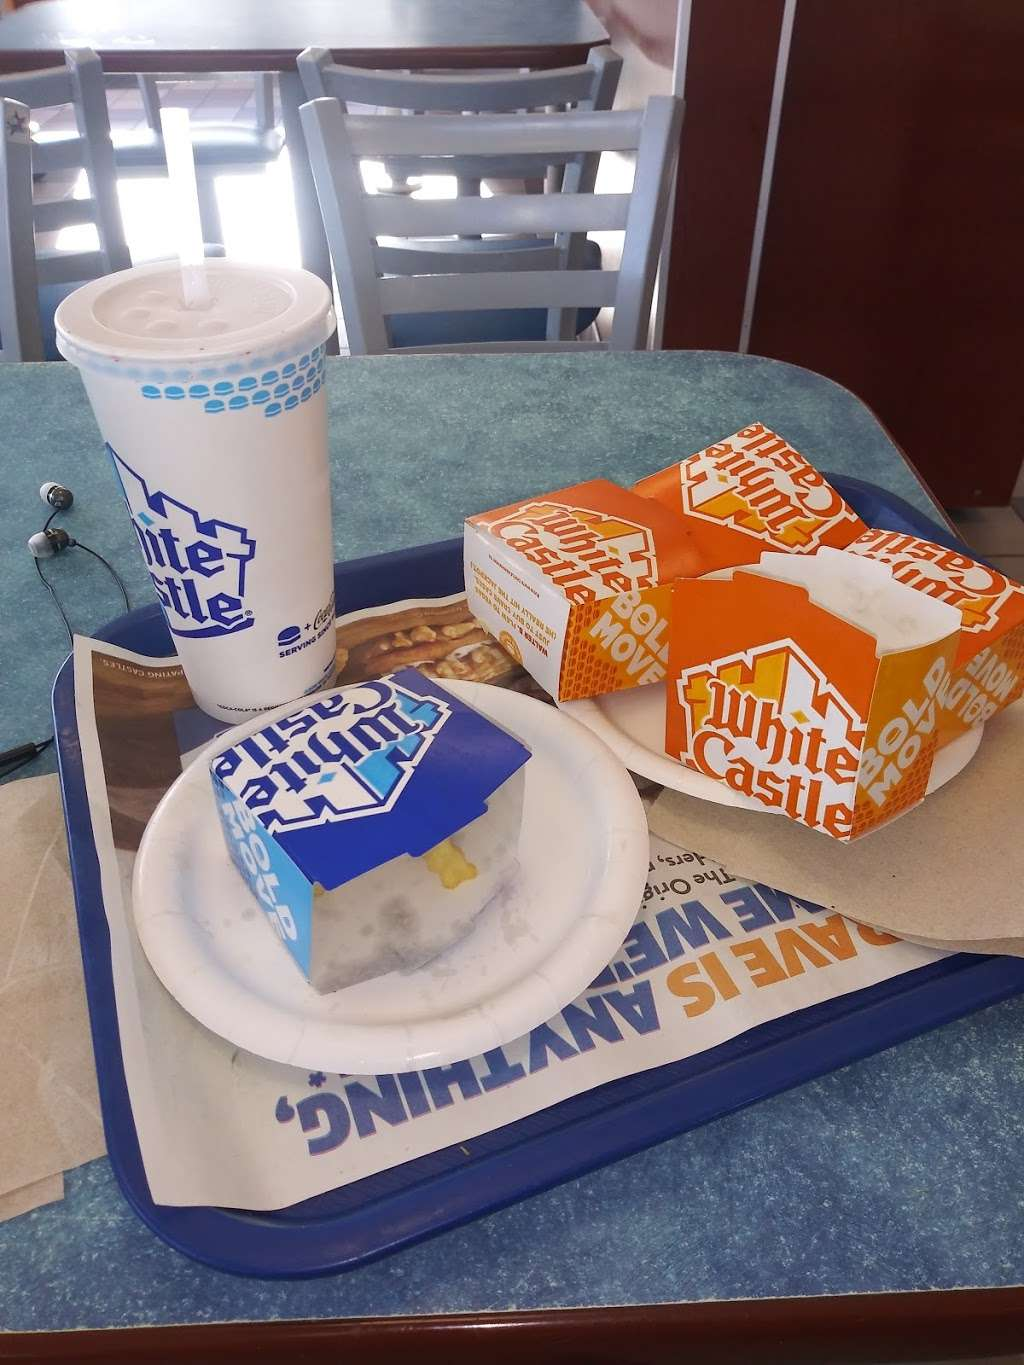 White Castle - restaurant  | Photo 8 of 10 | Address: 2701 Boston Rd, Bronx, NY 10467, USA | Phone: (718) 231-4978